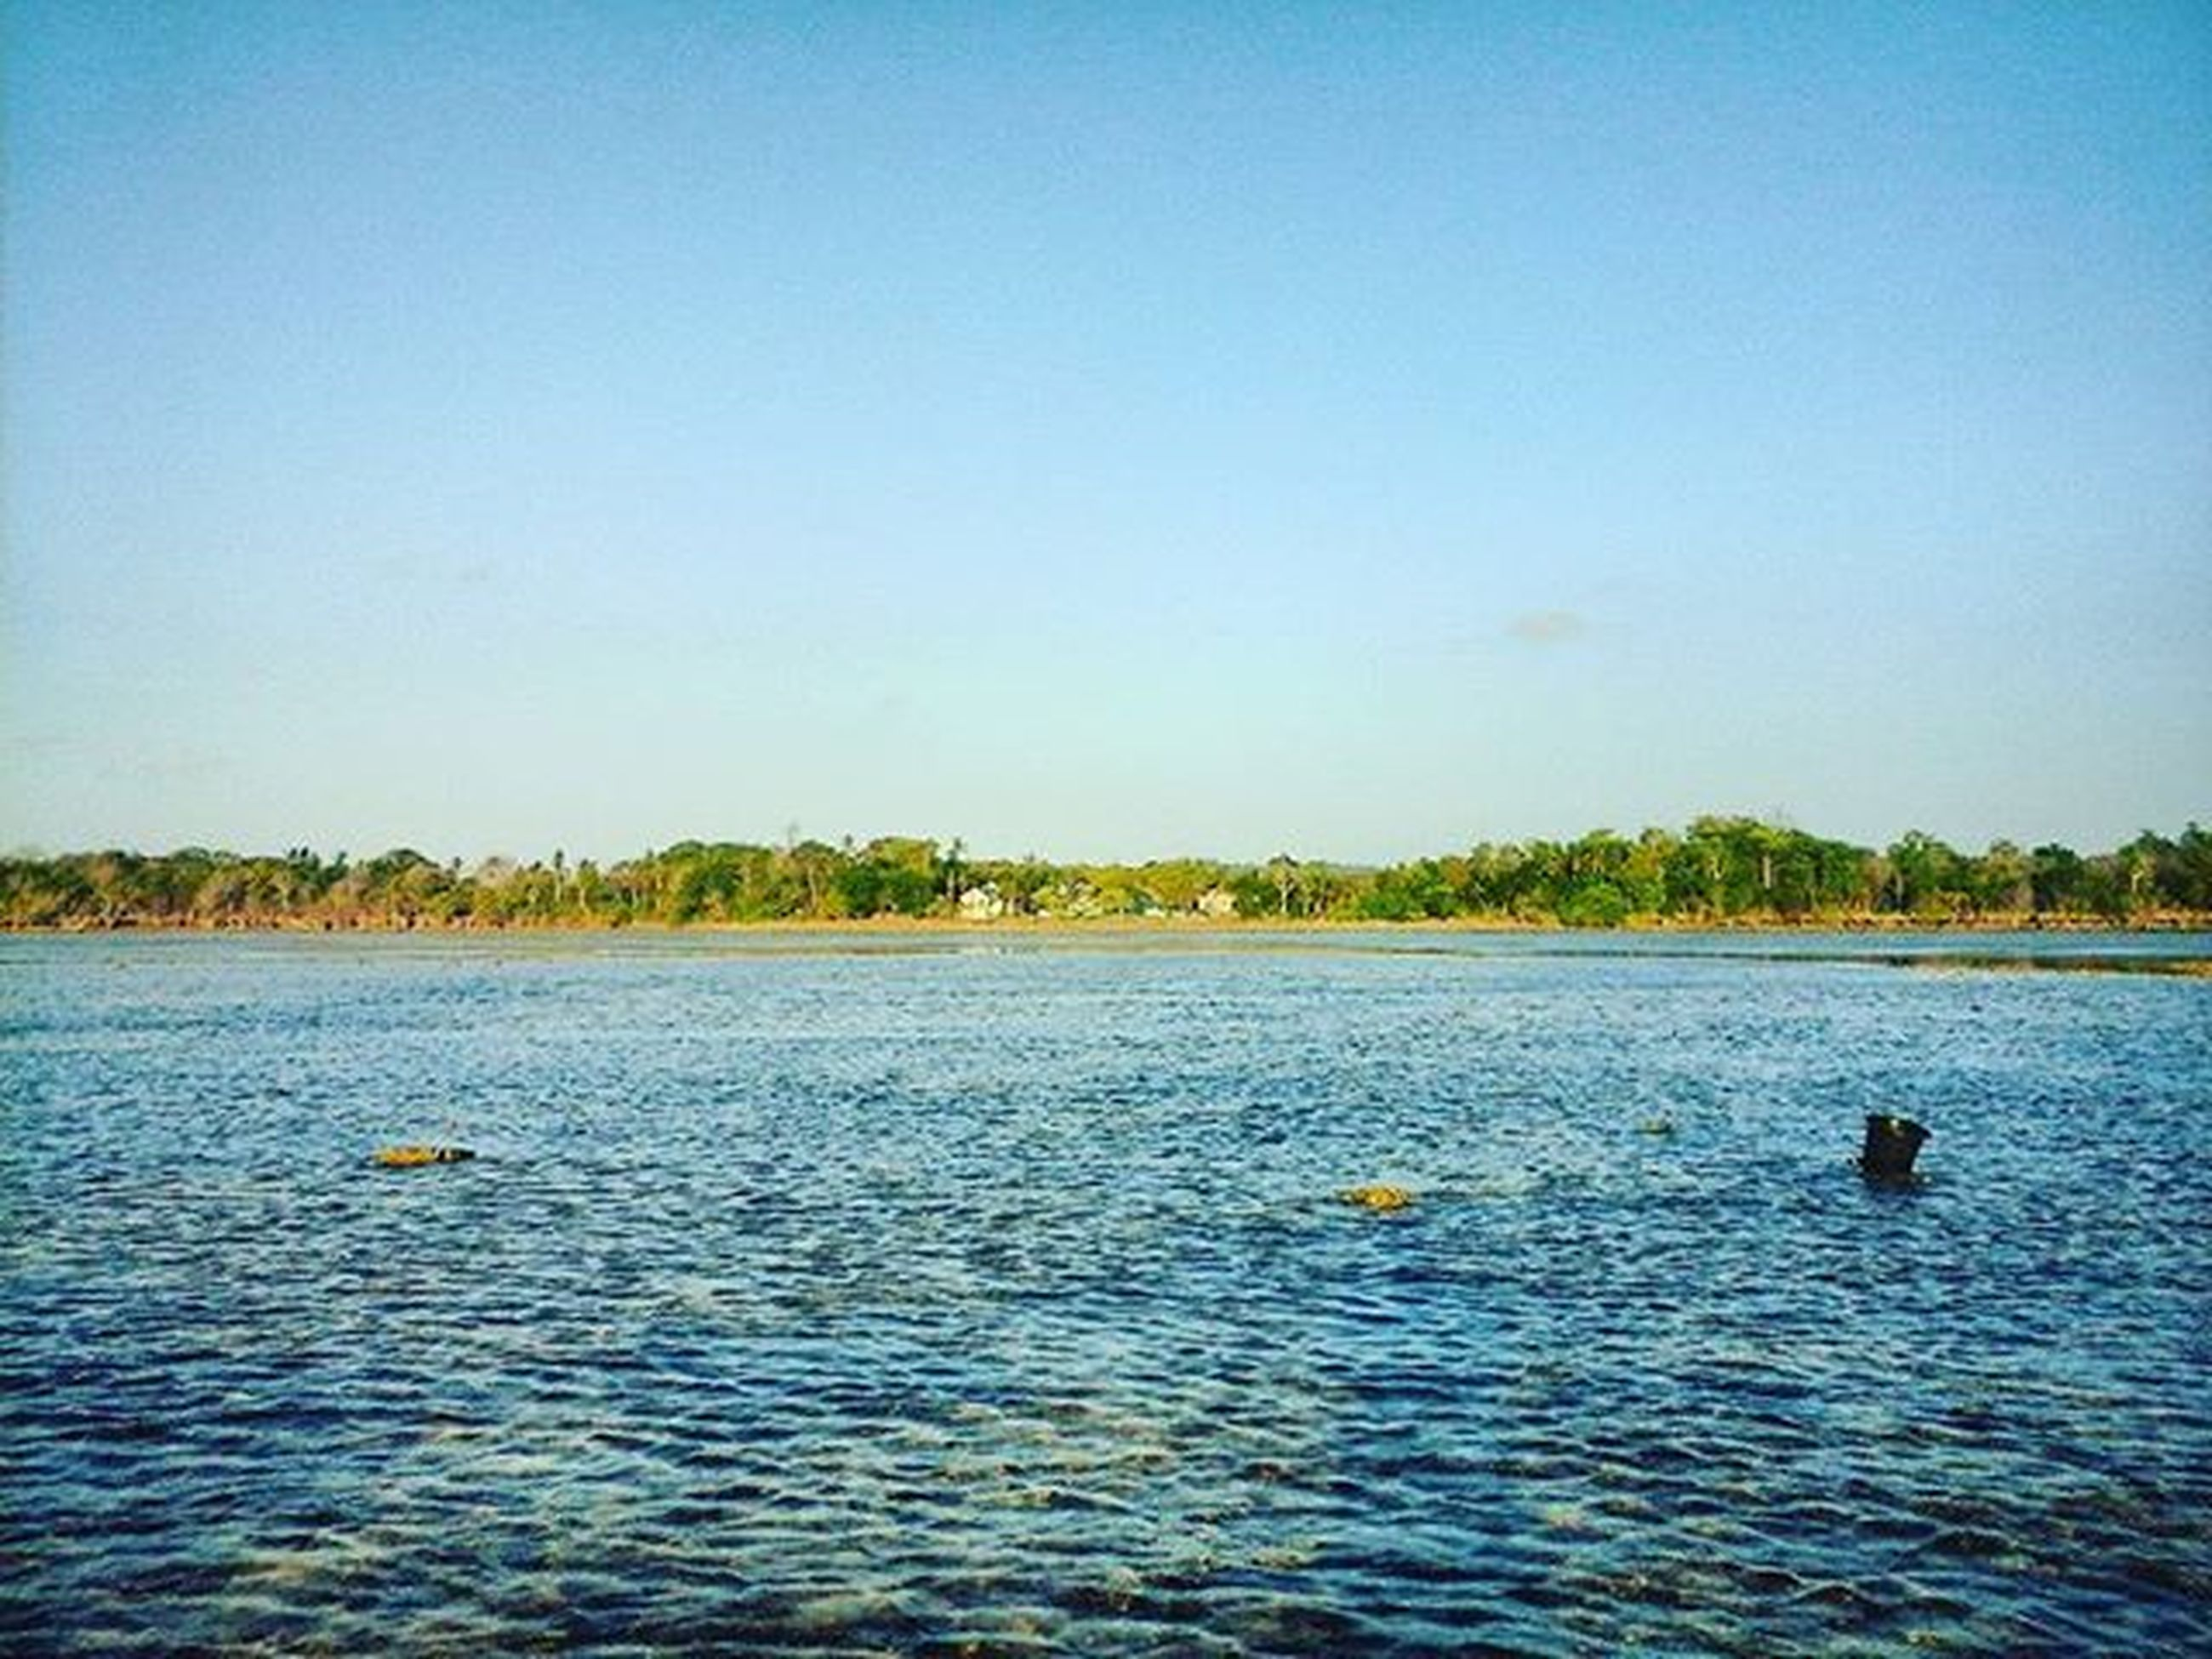 water, clear sky, waterfront, animal themes, copy space, lake, blue, tranquil scene, tranquility, bird, animals in the wild, wildlife, rippled, scenics, nature, beauty in nature, swimming, tree, river, duck